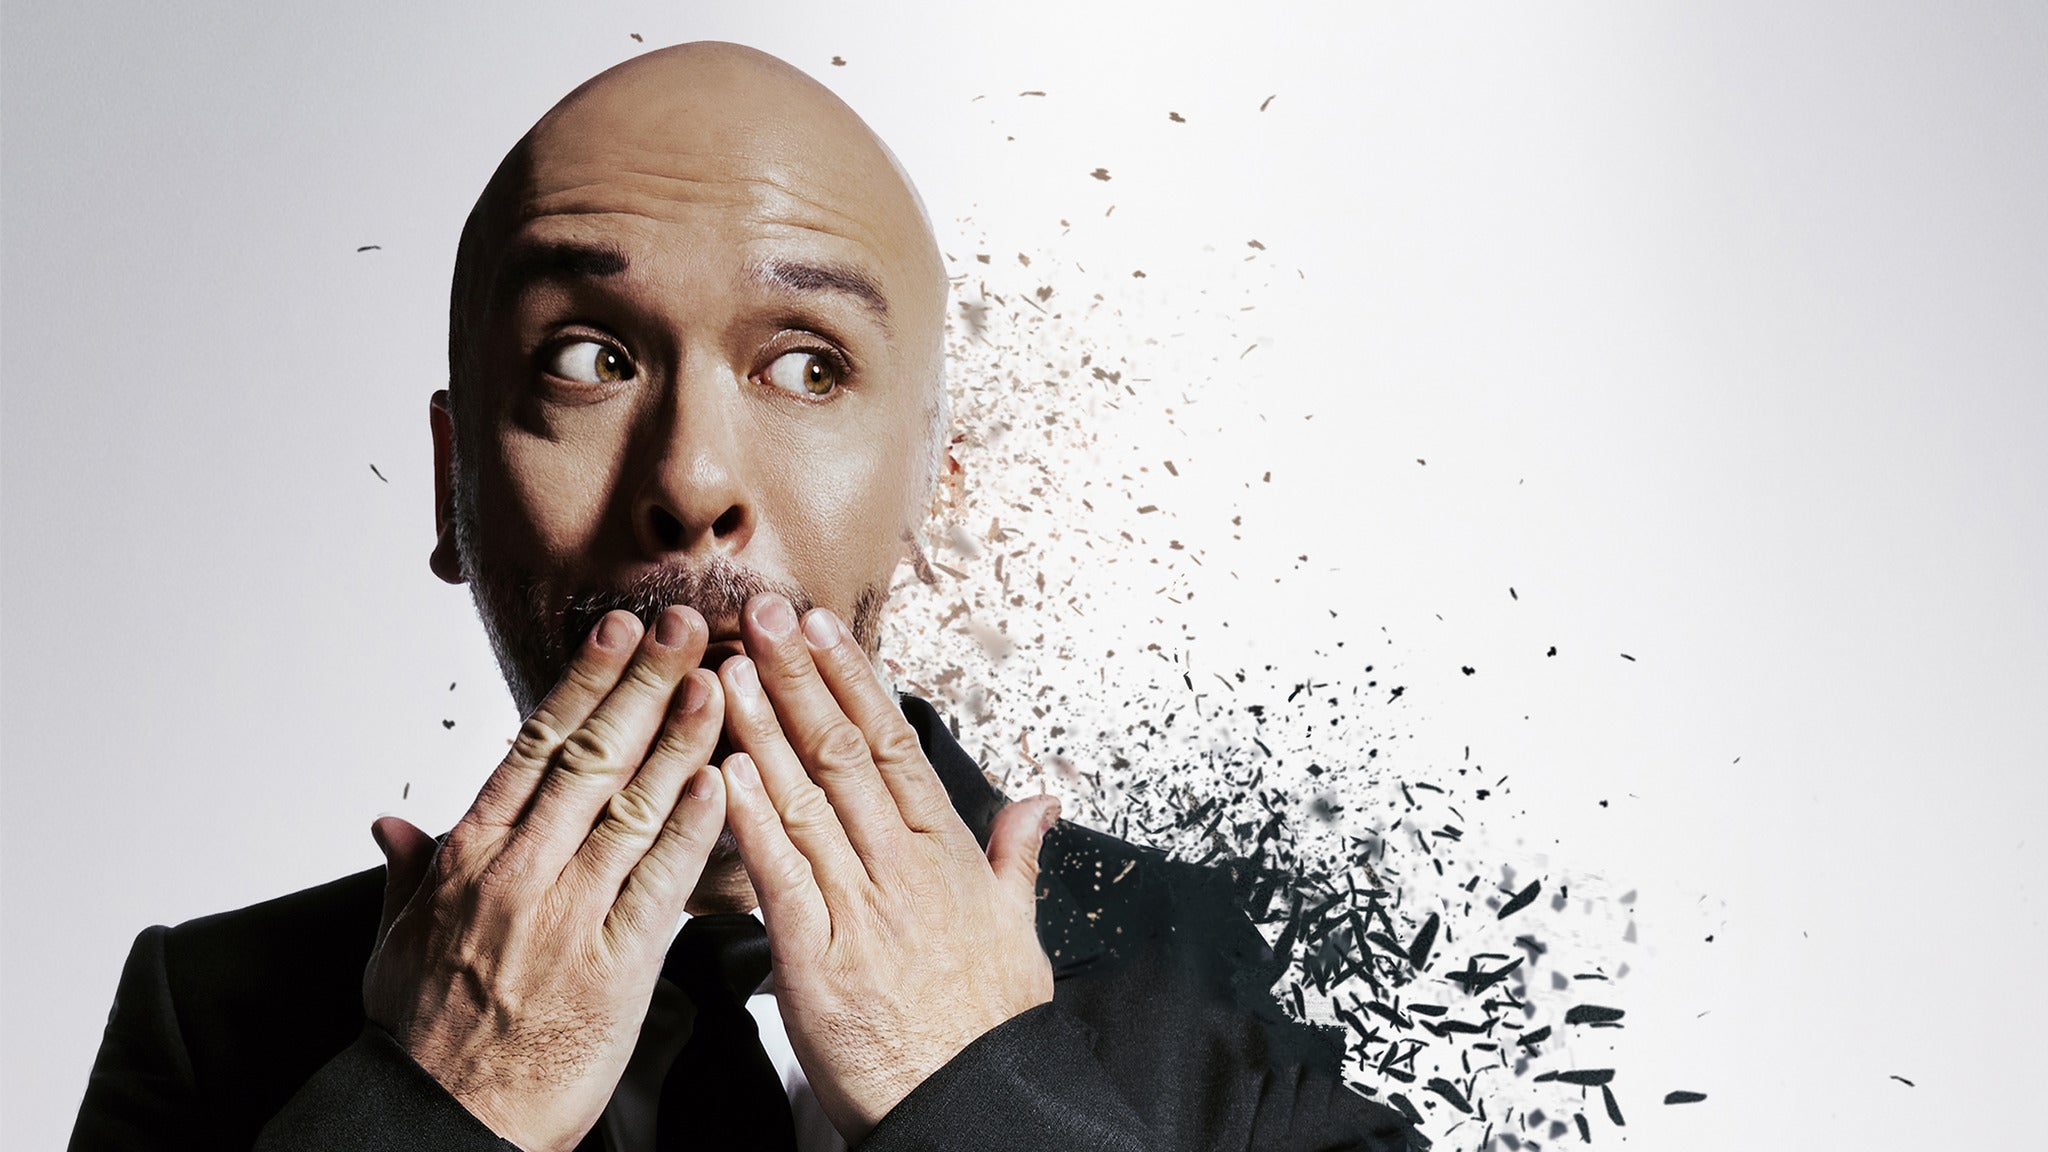 Jo Koy at Improv Comedy Club - Brea - Brea, CA 92821